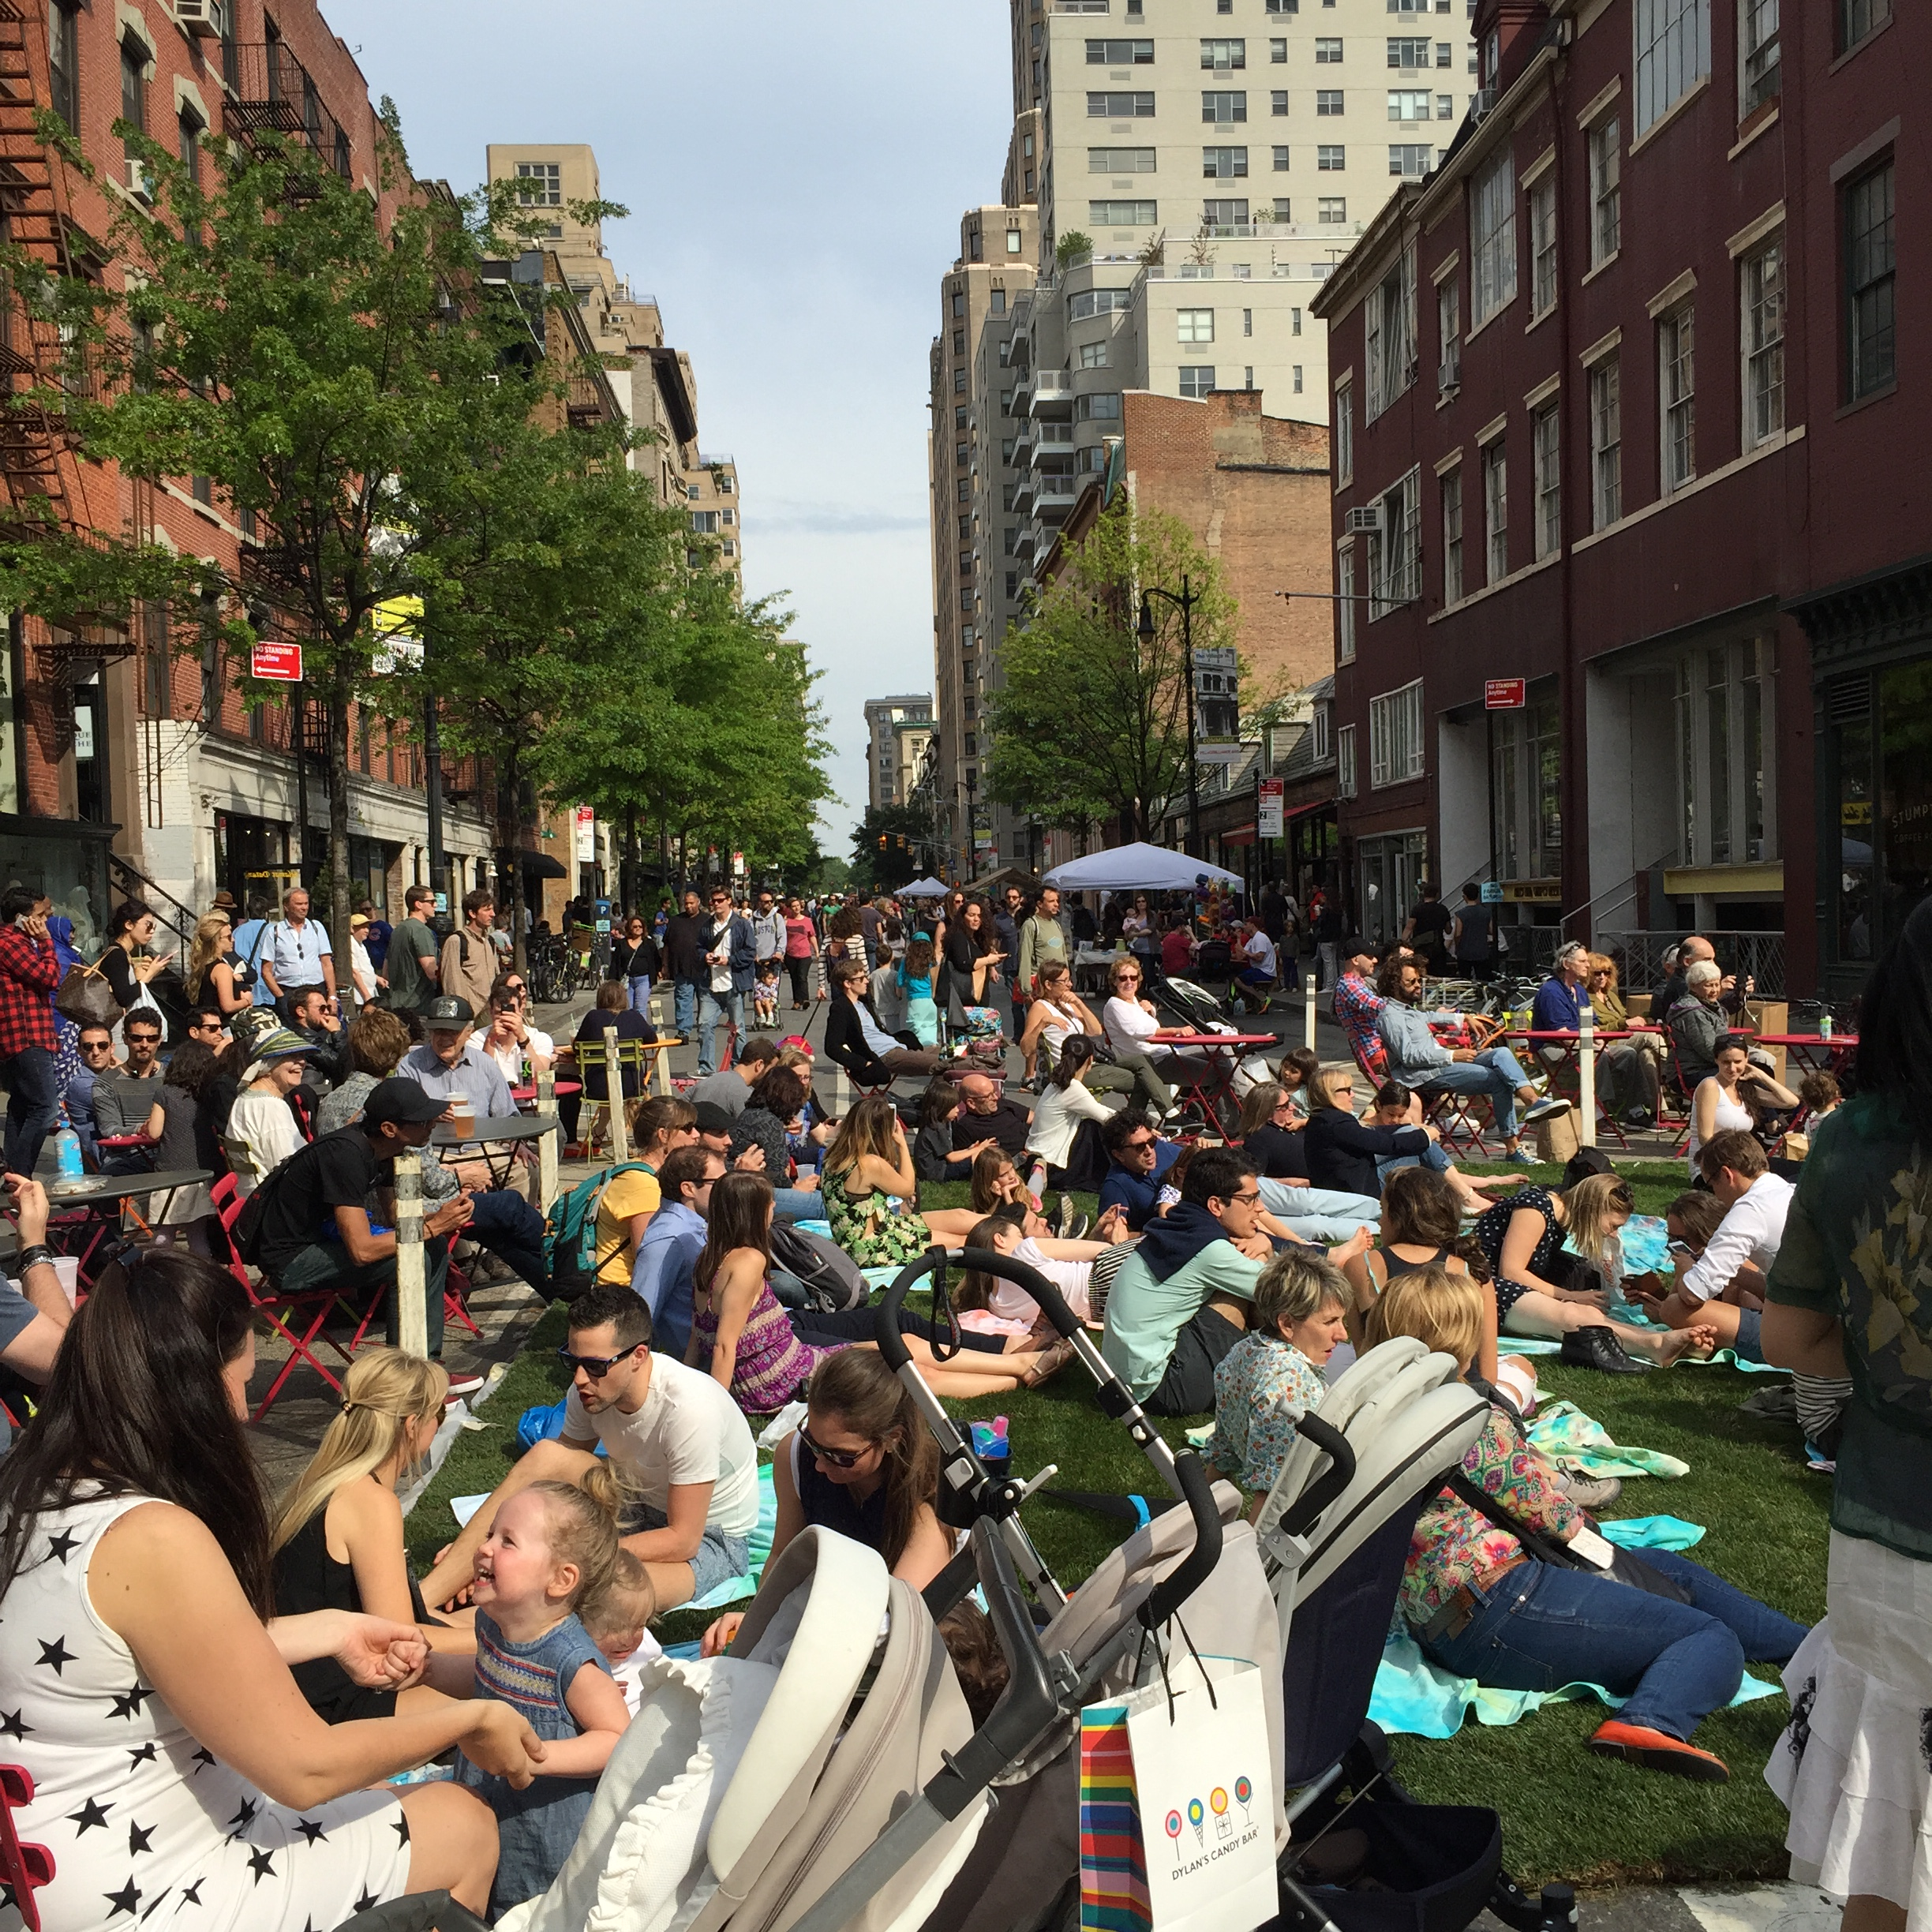 Thousands rocked out, created, listened, ate and drank at the Positively 8th Street Festival